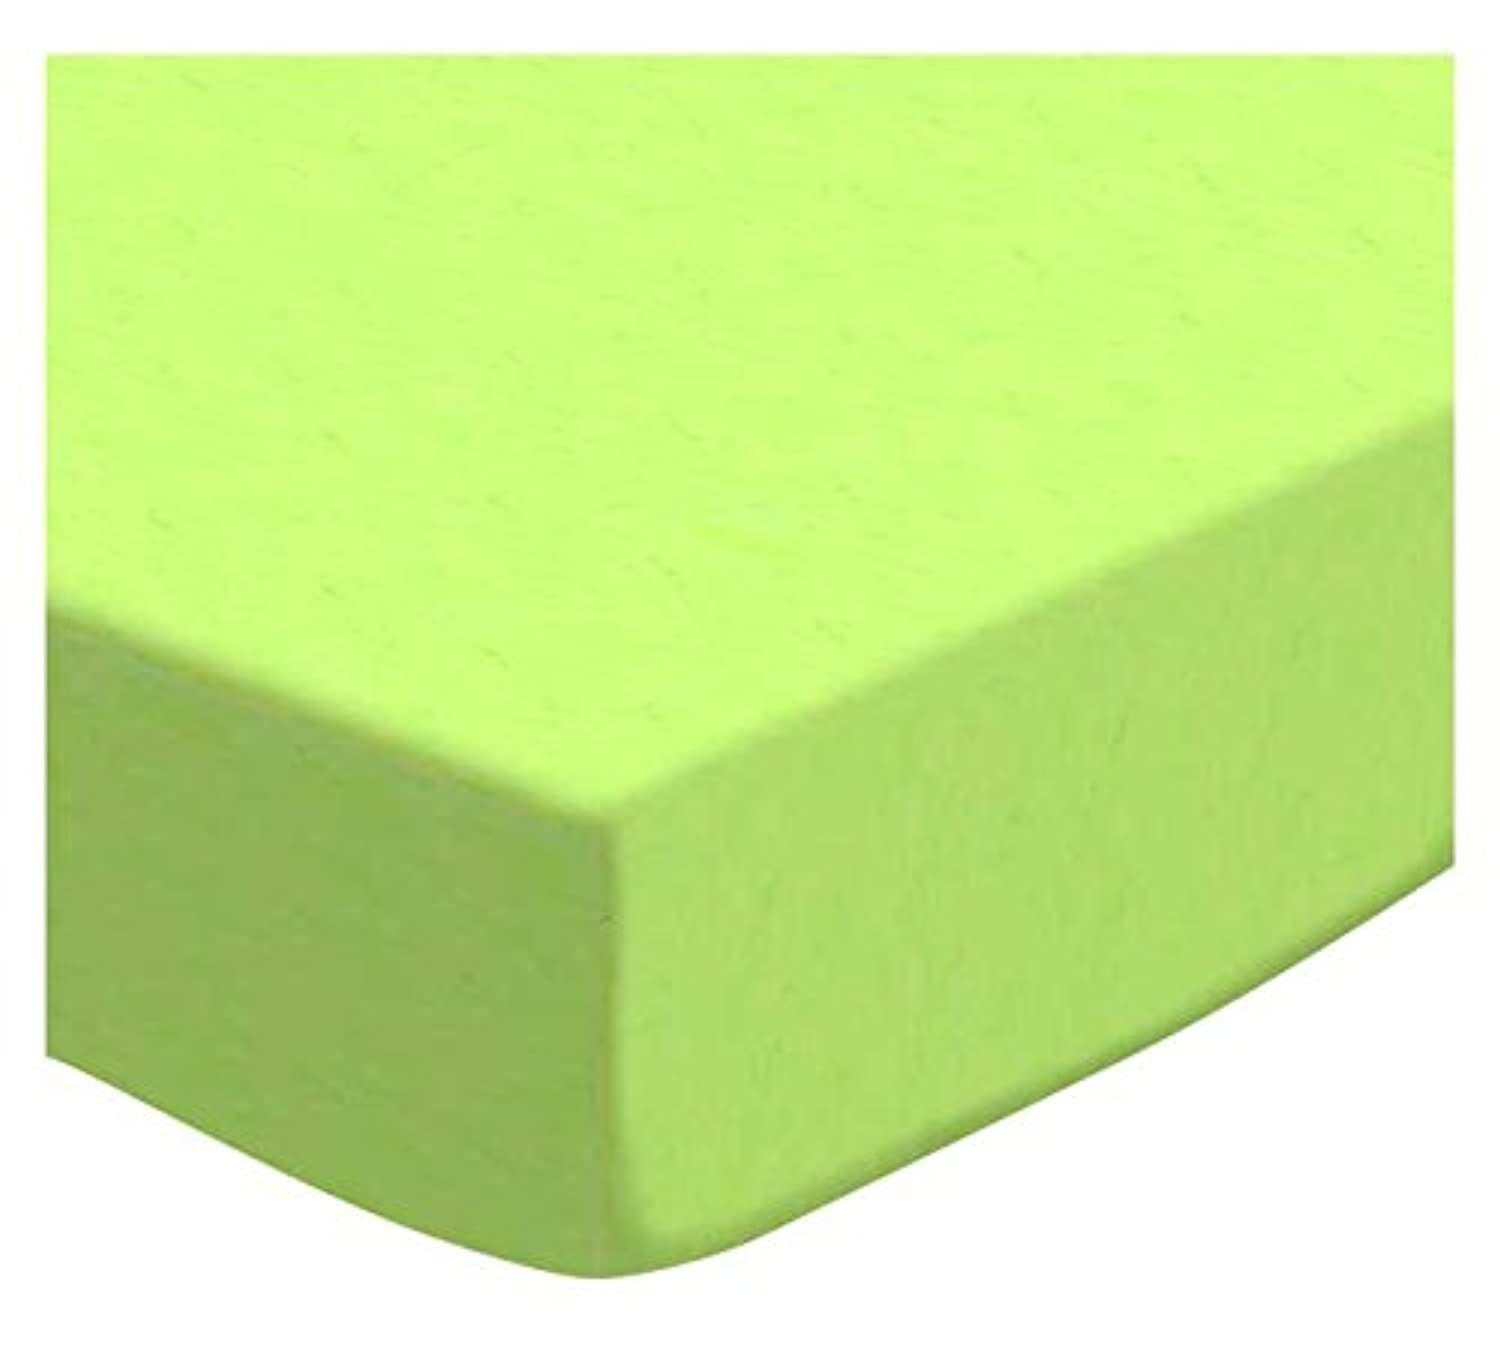 SheetWorld Fitted Portable / Mini Crib Sheet - Flannel - Lime - Made In USA by sheetworld